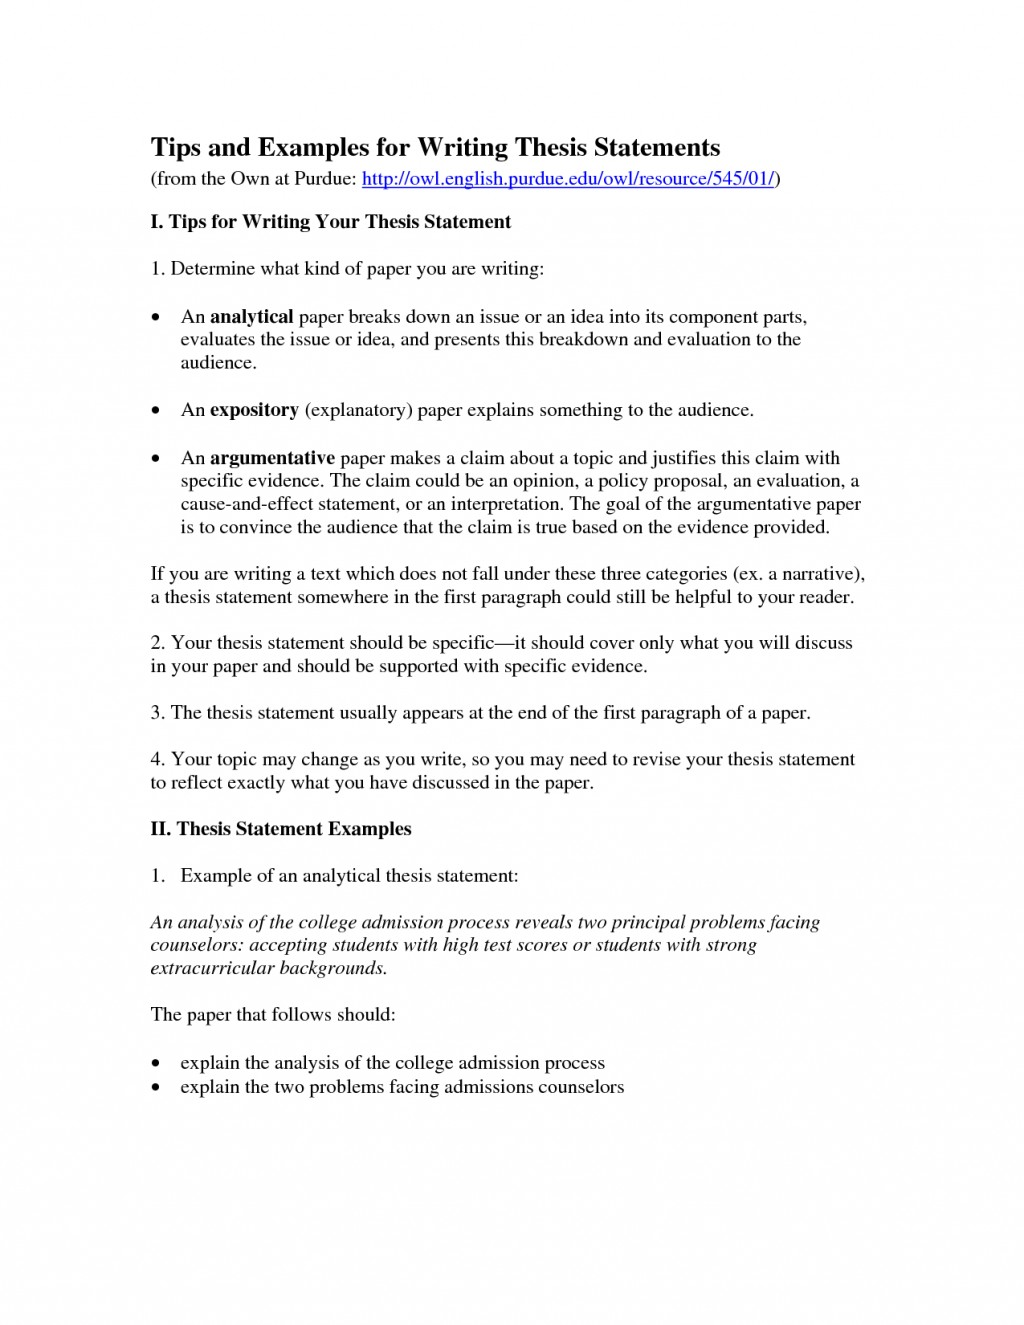 022 Self Confidence Essay Analysis What Thesis Example Image Resume About In Tamil Narrative Gaining Writing Short Free Persuasive Is The Key To Success Top On For Students Conclusion Large